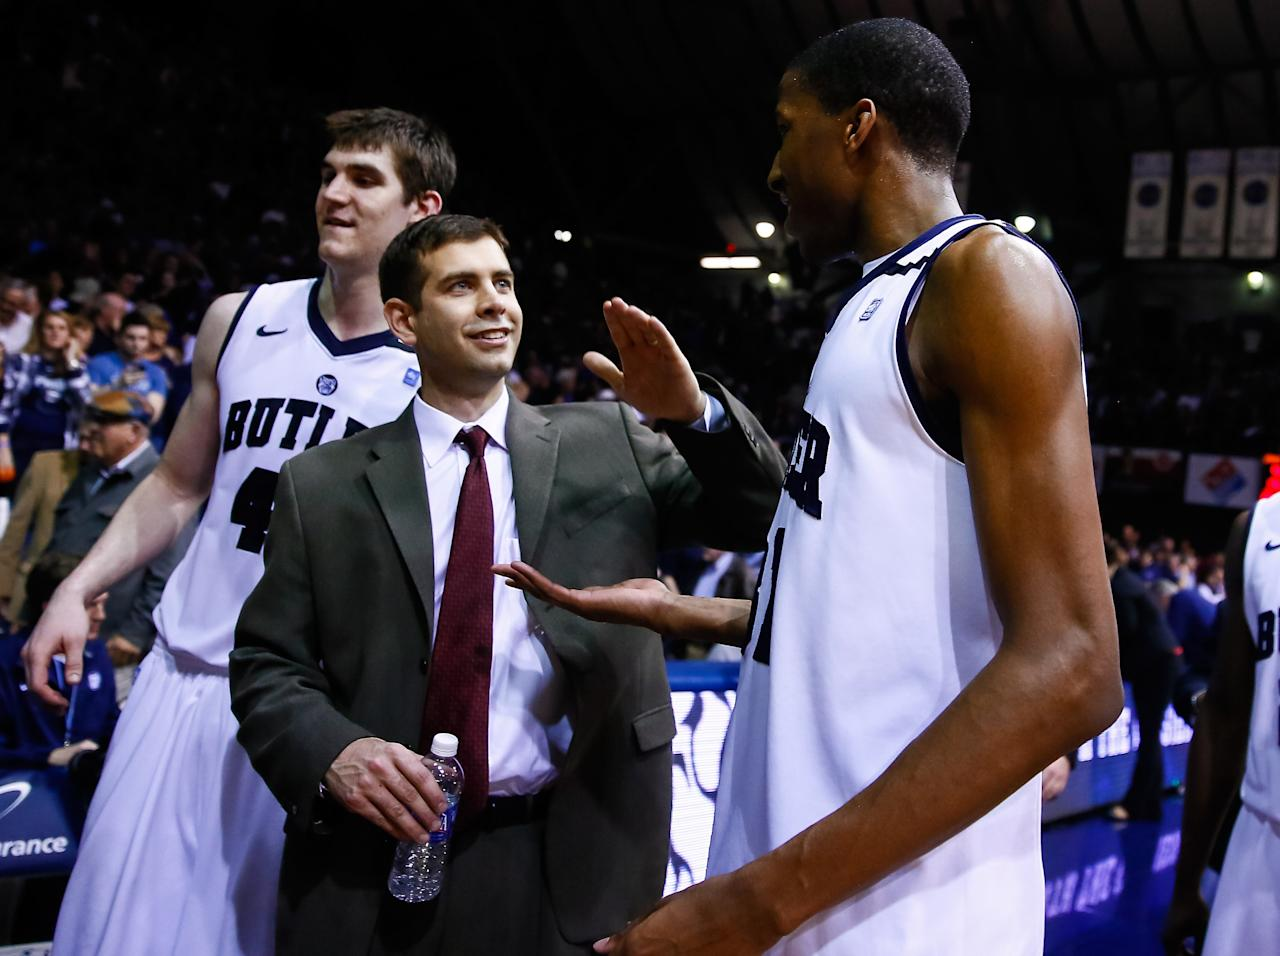 INDIANAPOLIS, IN - MARCH 09: Head coach Brad Stevens of the Butler Bulldogs congratulates Kameron Woods #31 of the Butler Bulldogs following the game against the Xavier Musketeers at Hinkle Fieldhouse on March 9, 2013 in Indianapolis, Indiana. Butler defeated Xavier 67-62. (Photo by Michael Hickey/Getty Images)